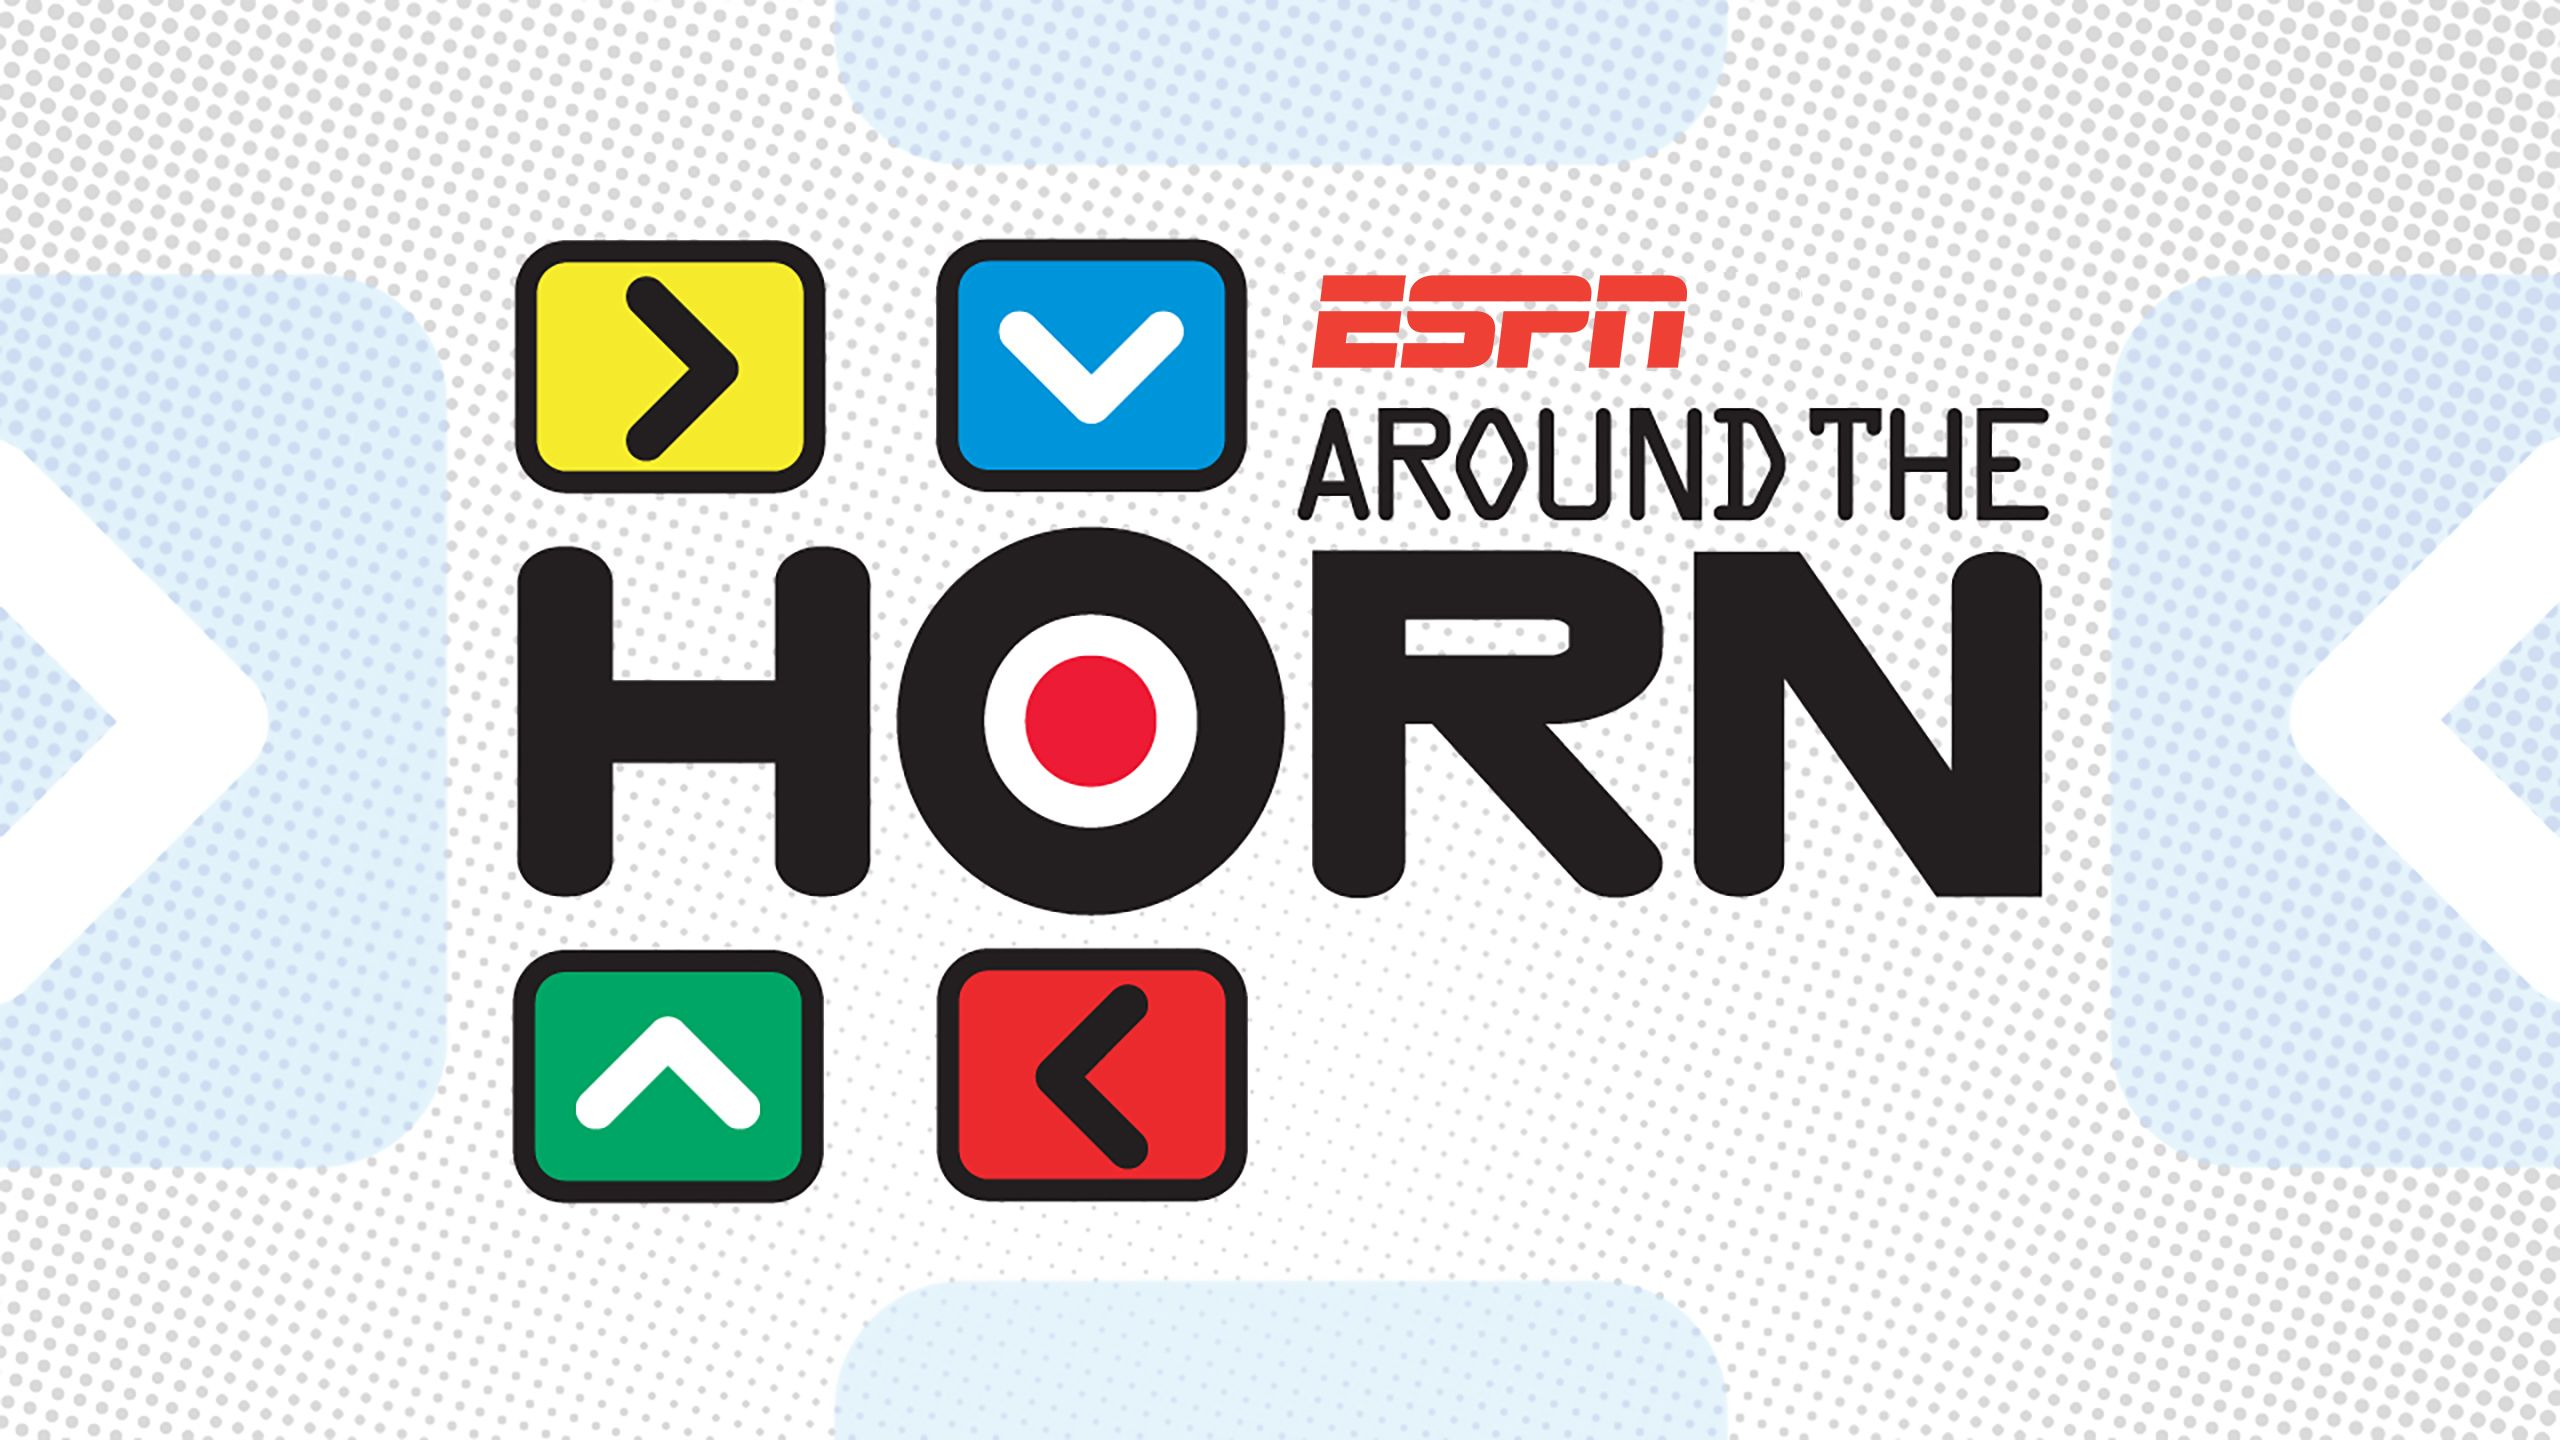 Mon, 10/23 - Around The Horn